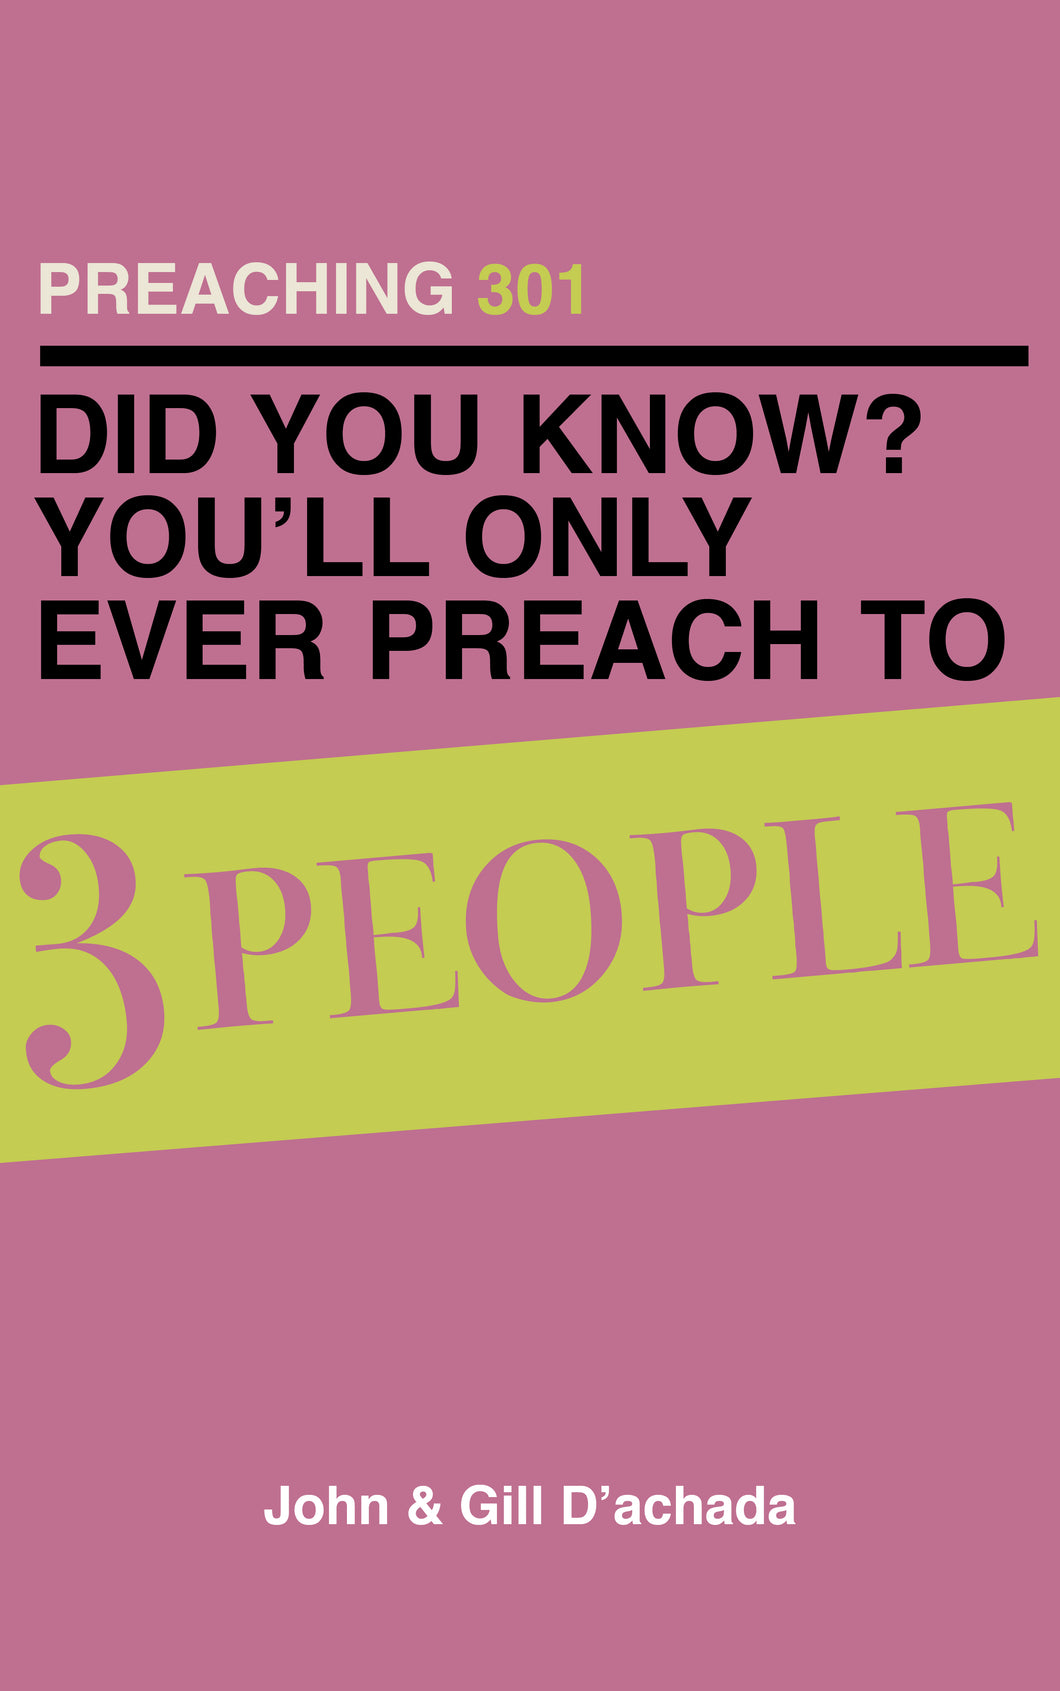 *Pre-Order* PREACHING 301: DID YOU KNOW? YOU'LL ONLY EVER PREACH TO 3 PEOPLE